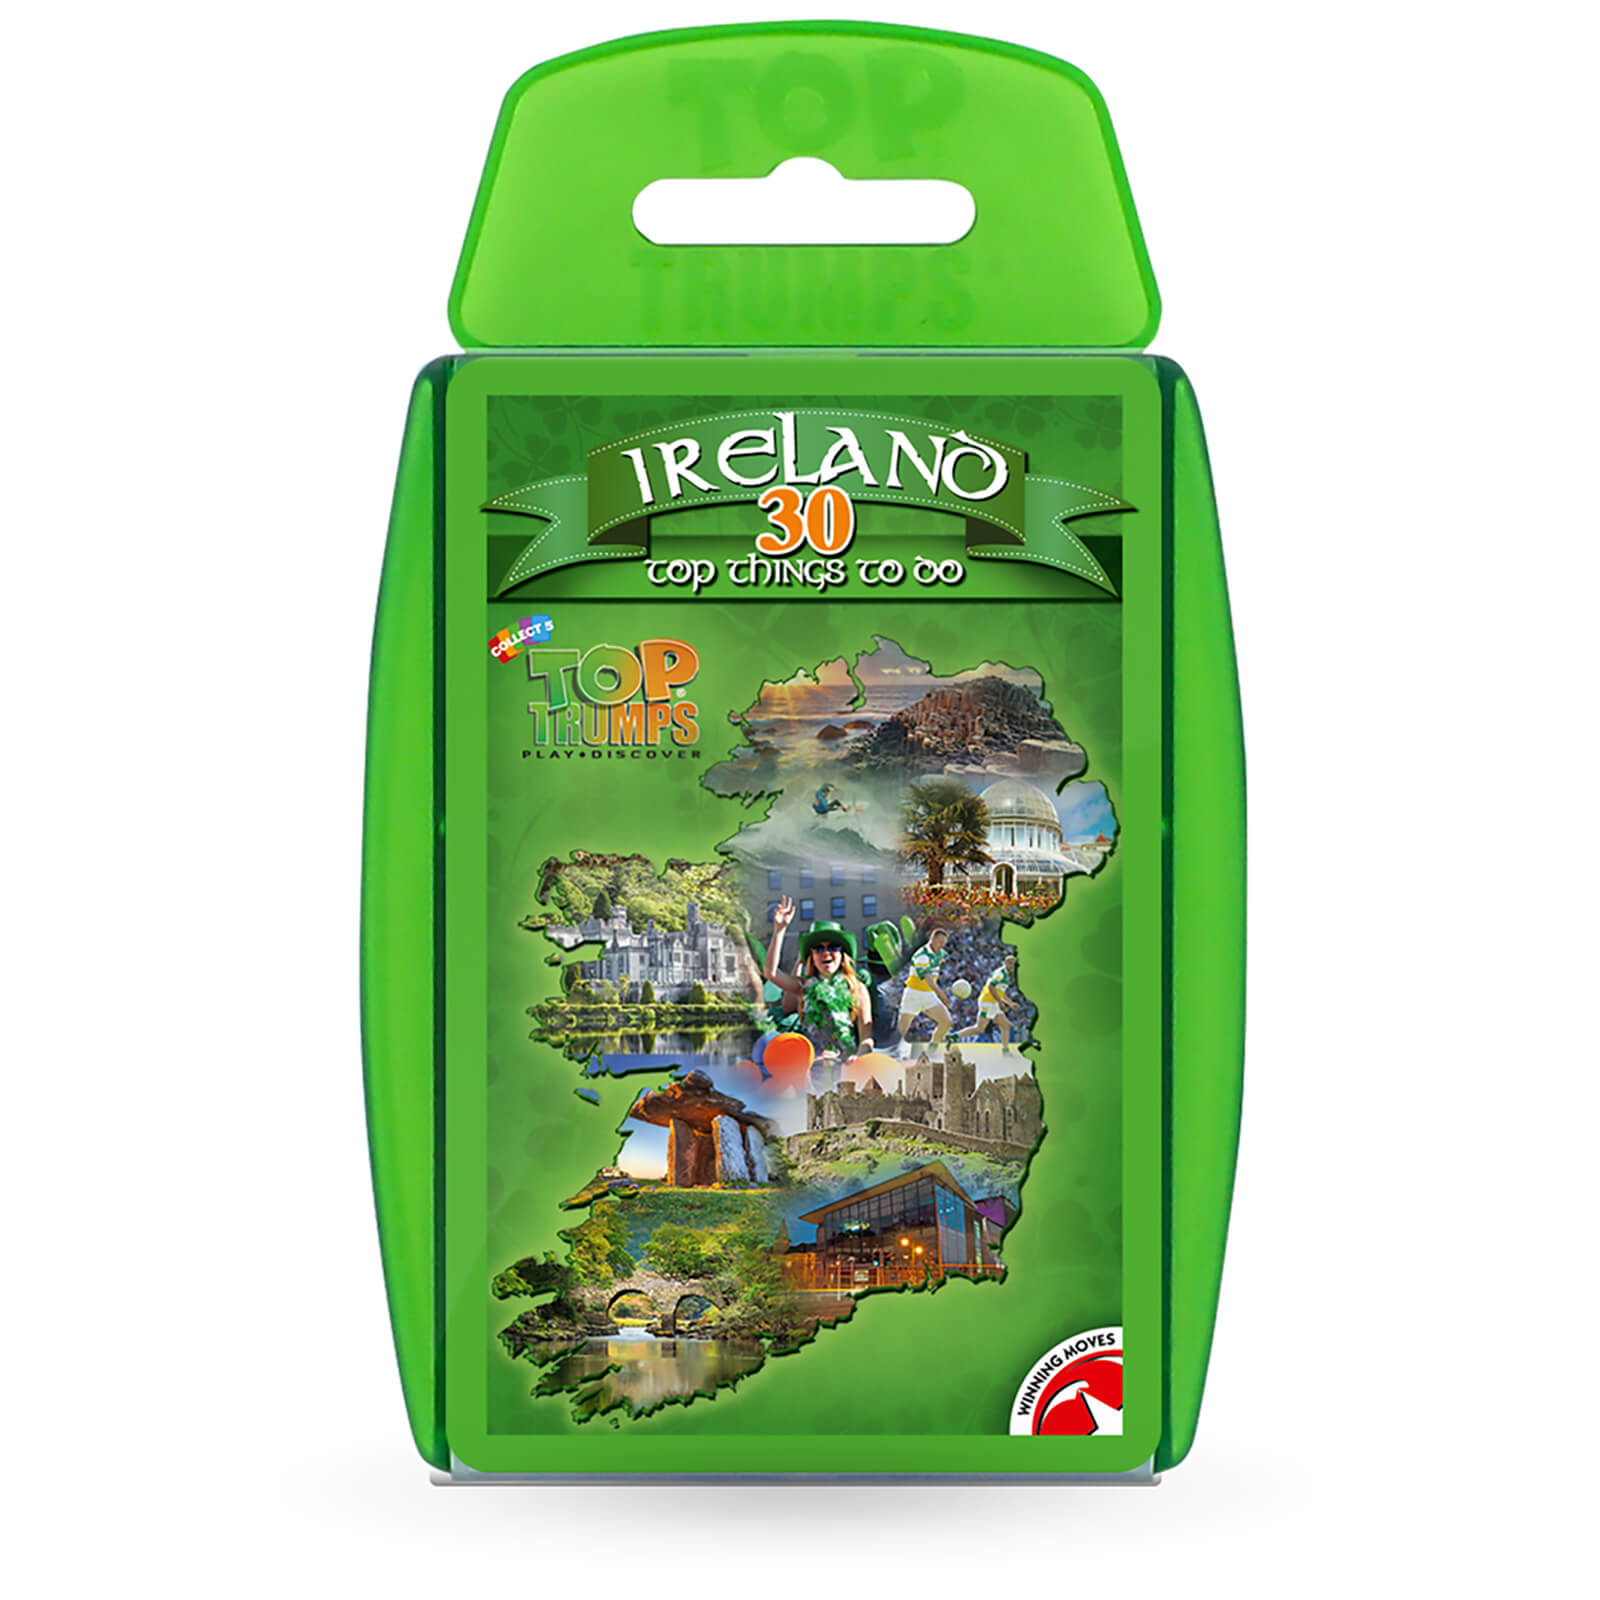 Image of Top Trumps Card Game - Ireland 30 Things to Do Edition